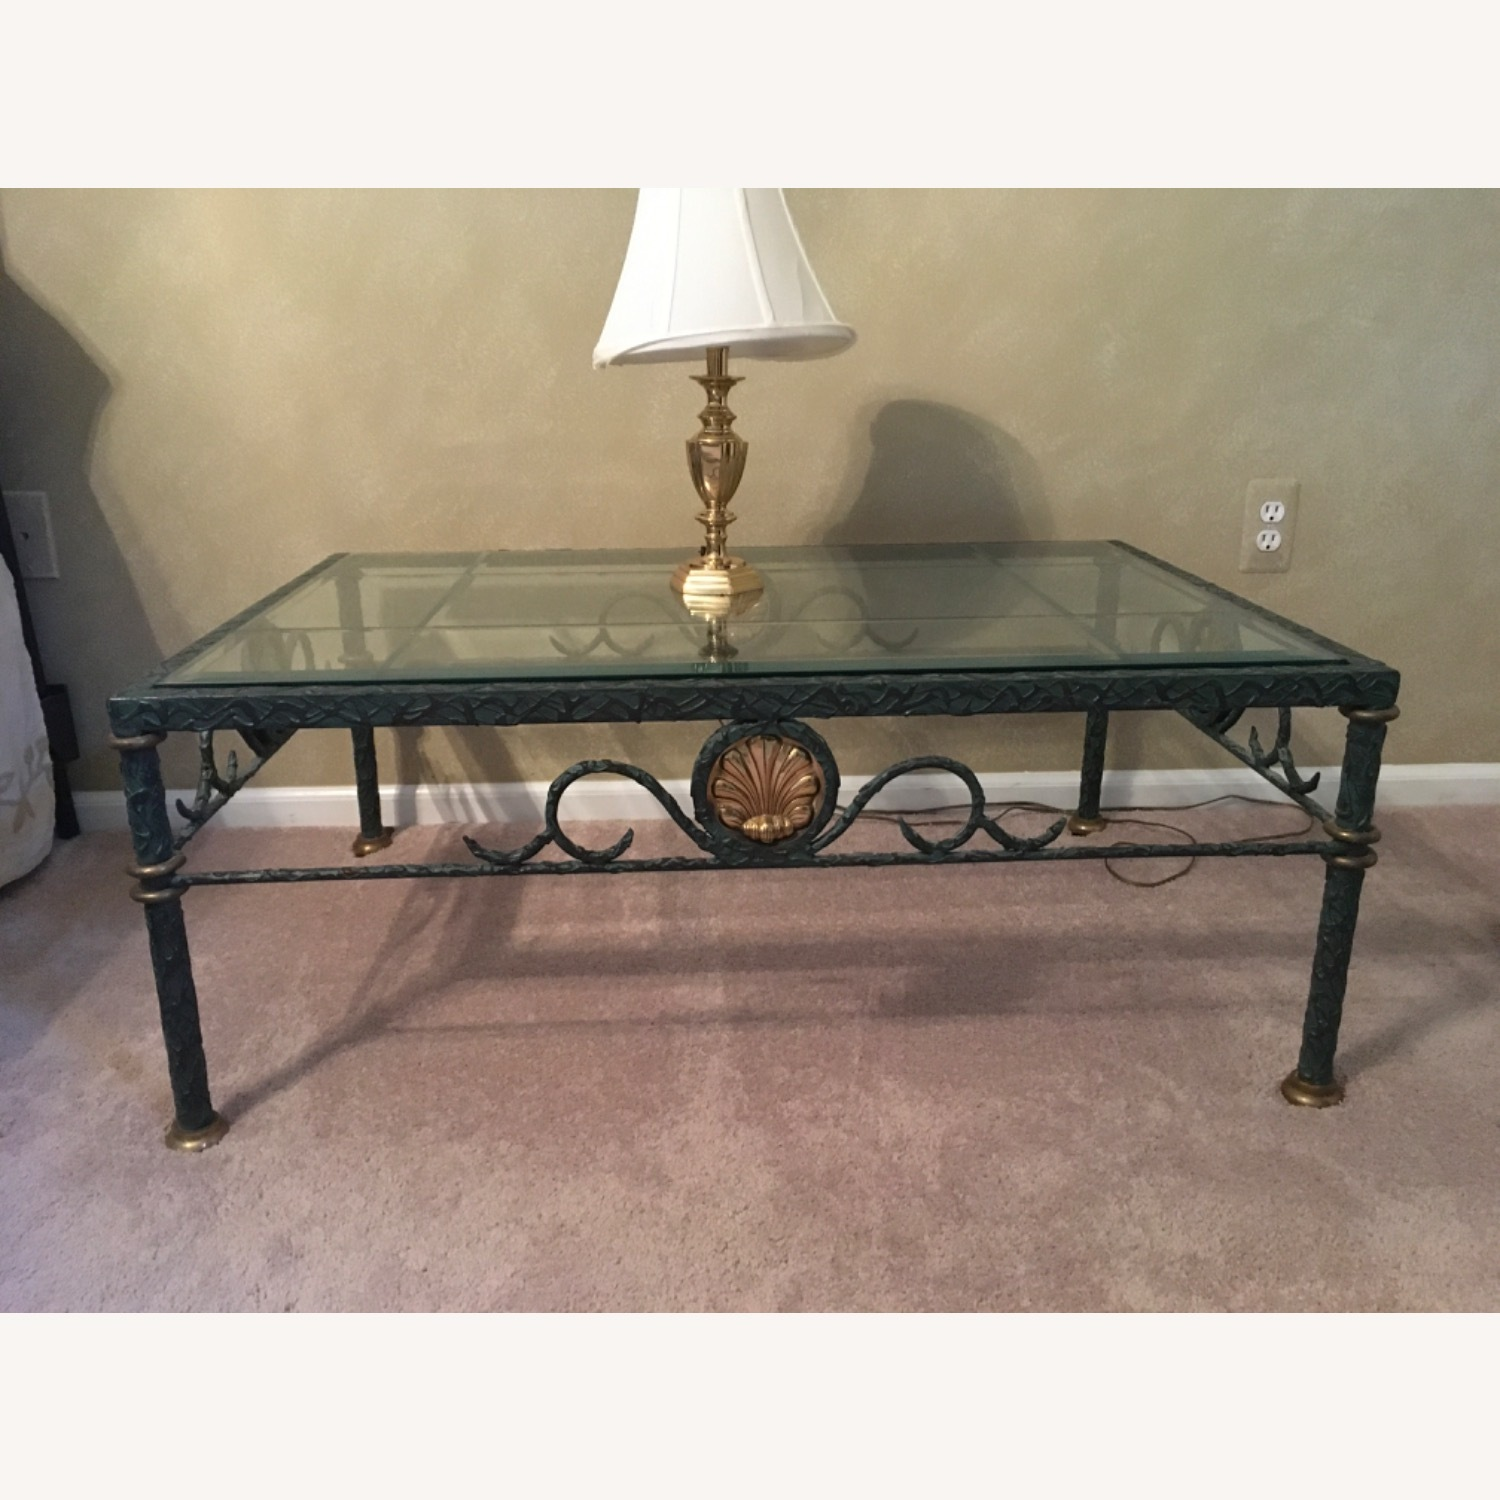 Beveled Glass and Iron Coffee Table - image-3